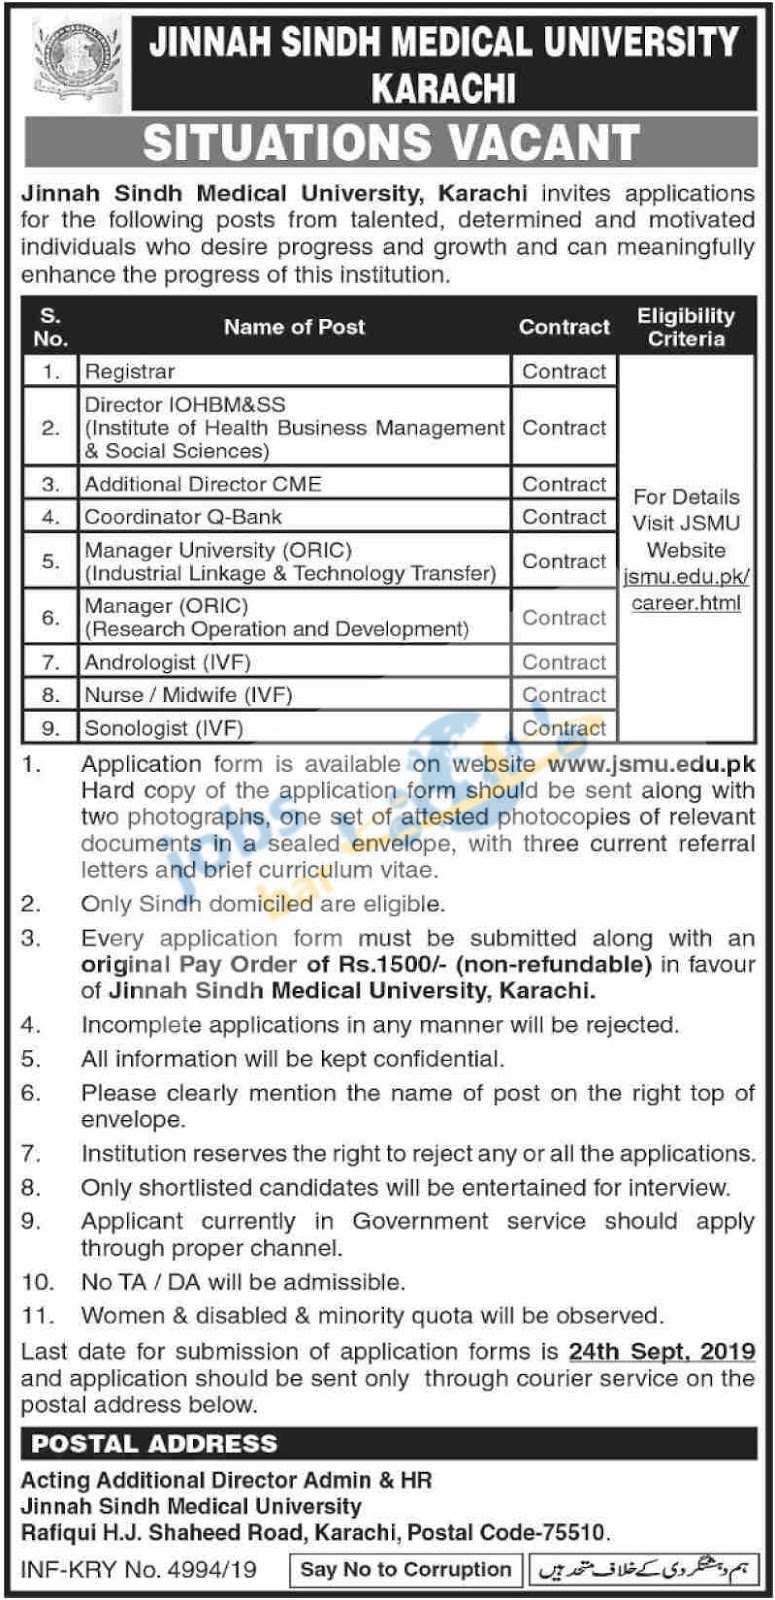 Jinnah Sindh Medical University JSMU Karachi Jobs 2019 - jobsbar